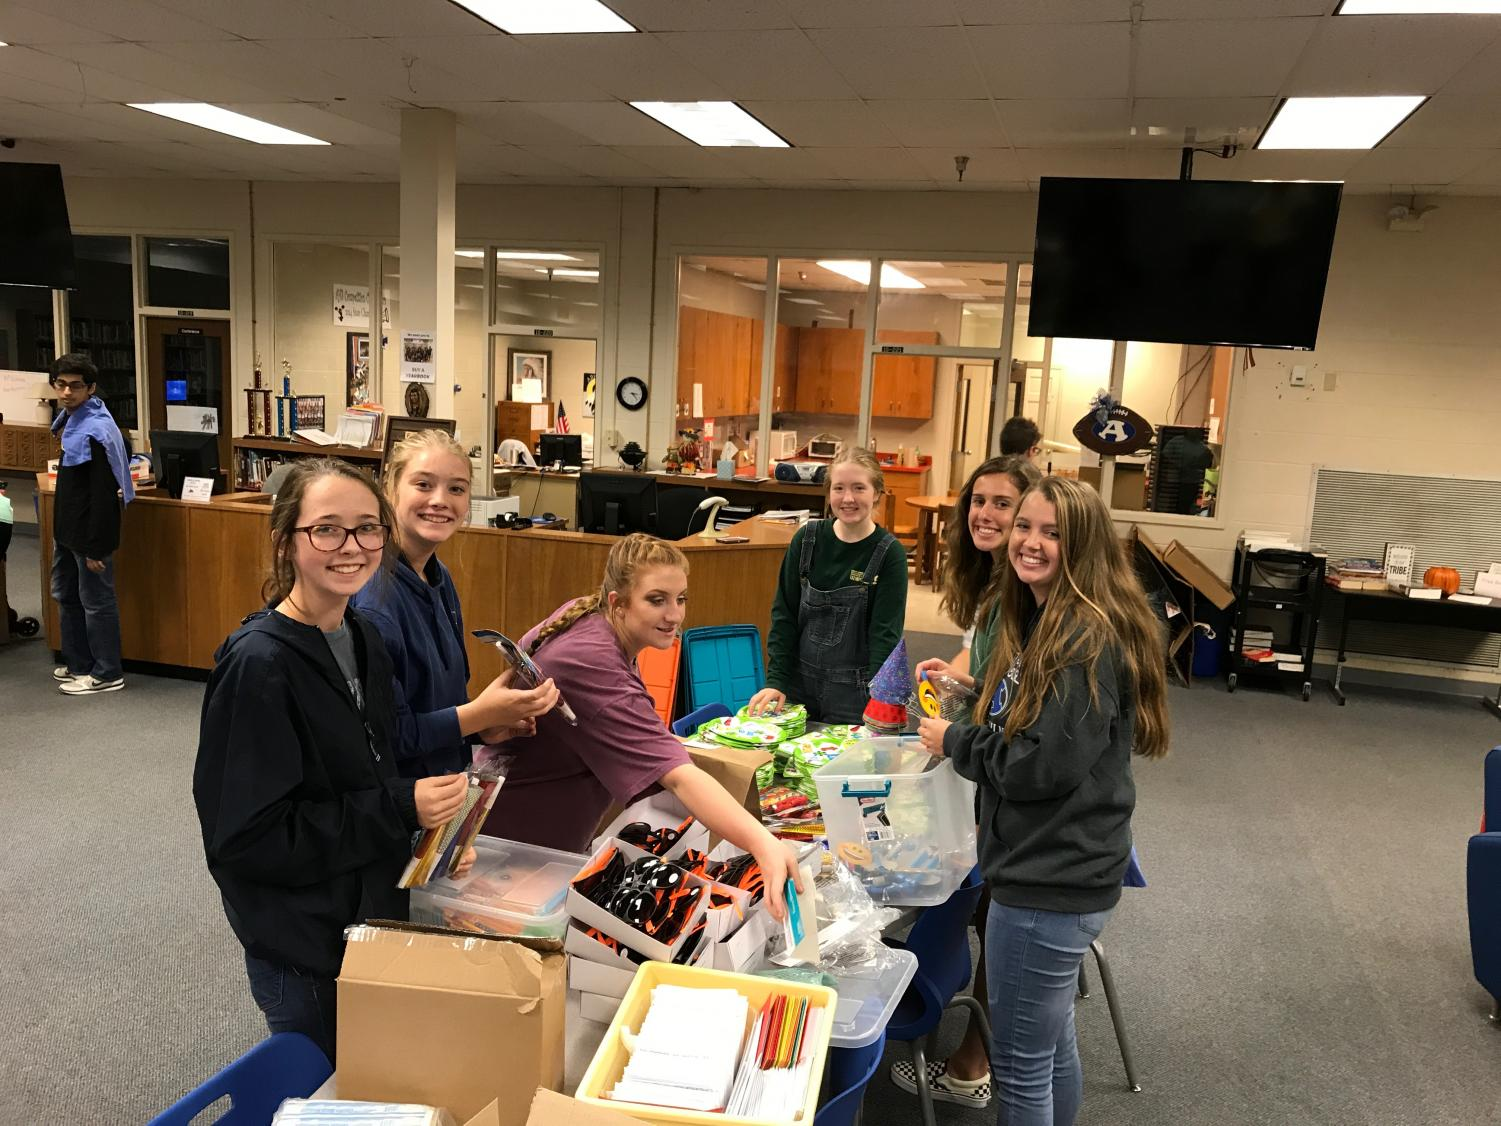 A group of Key Club members stops working for a moment to pose for a photo before resuming putting the bags together. At this table they will pack sun glasses, crayons, and all other manner of fun items into the bag.